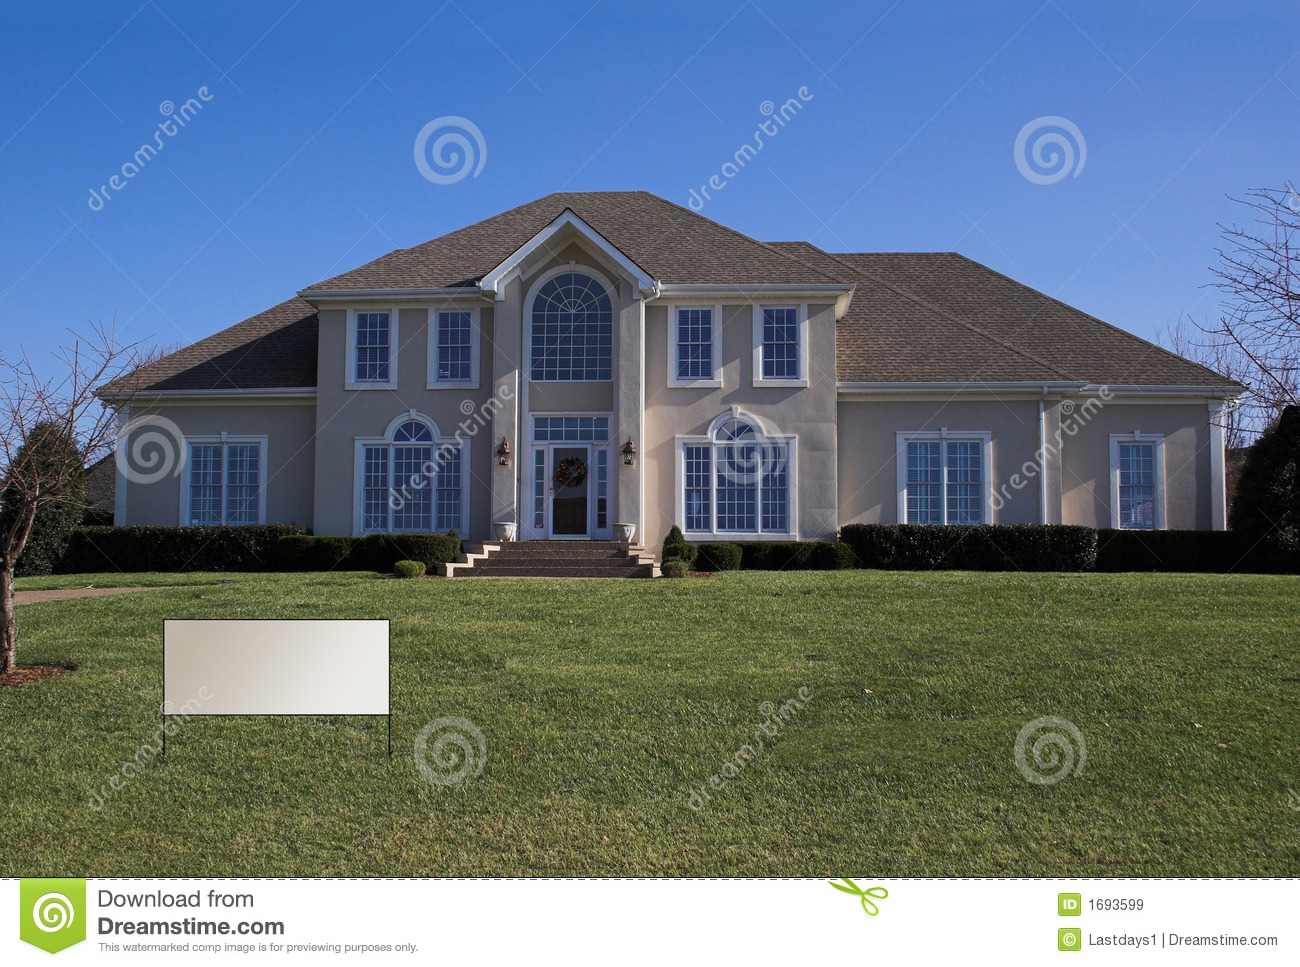 Beautiful homes series b4 royalty free stock images for Beautiful home photos